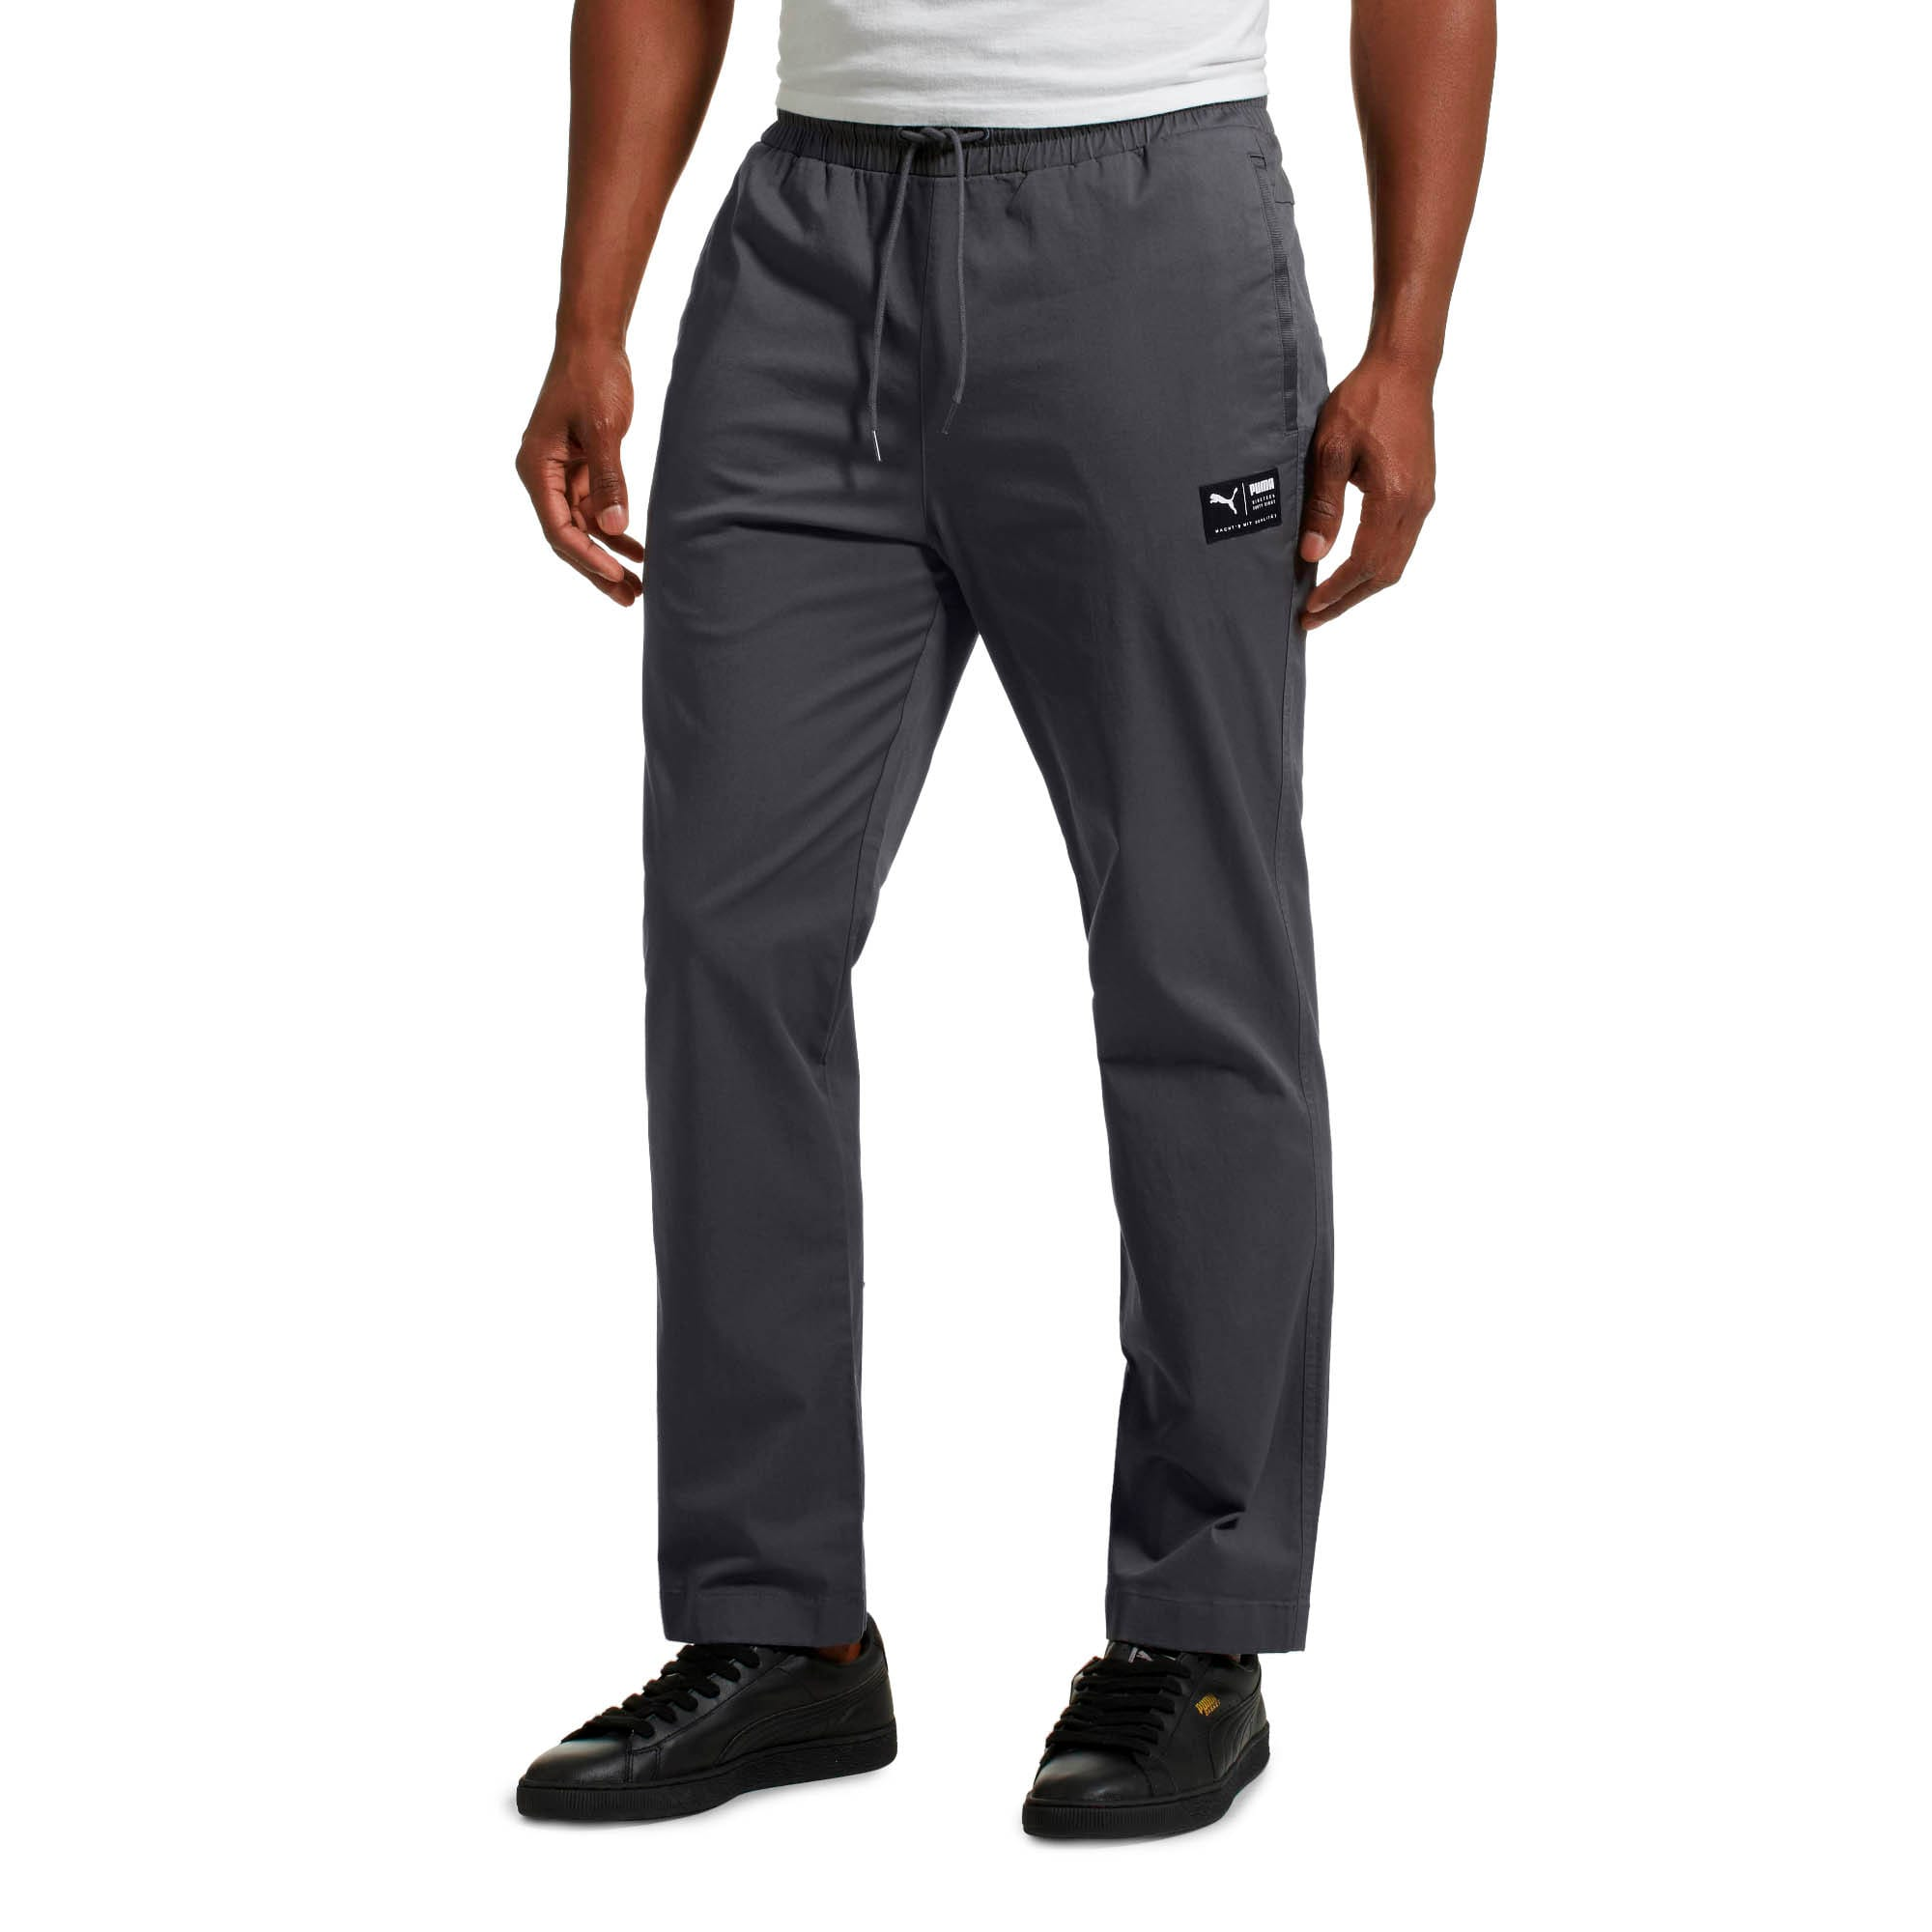 Downtown Twill Men's Pants, Iron Gate, large